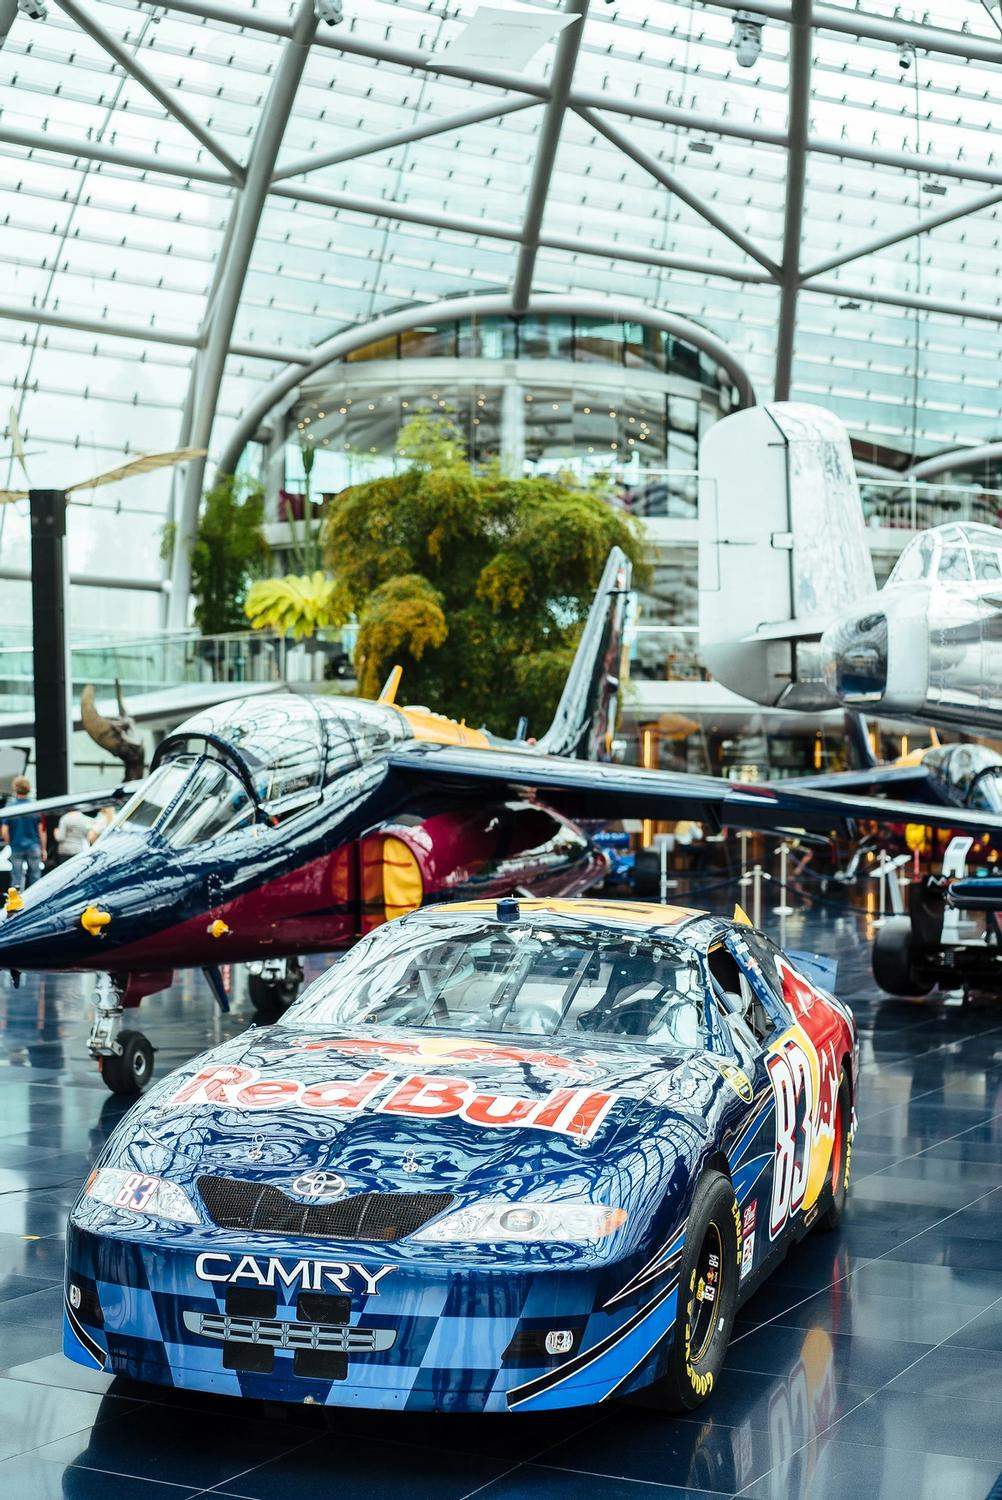 Photo of a car in RedBull museum.